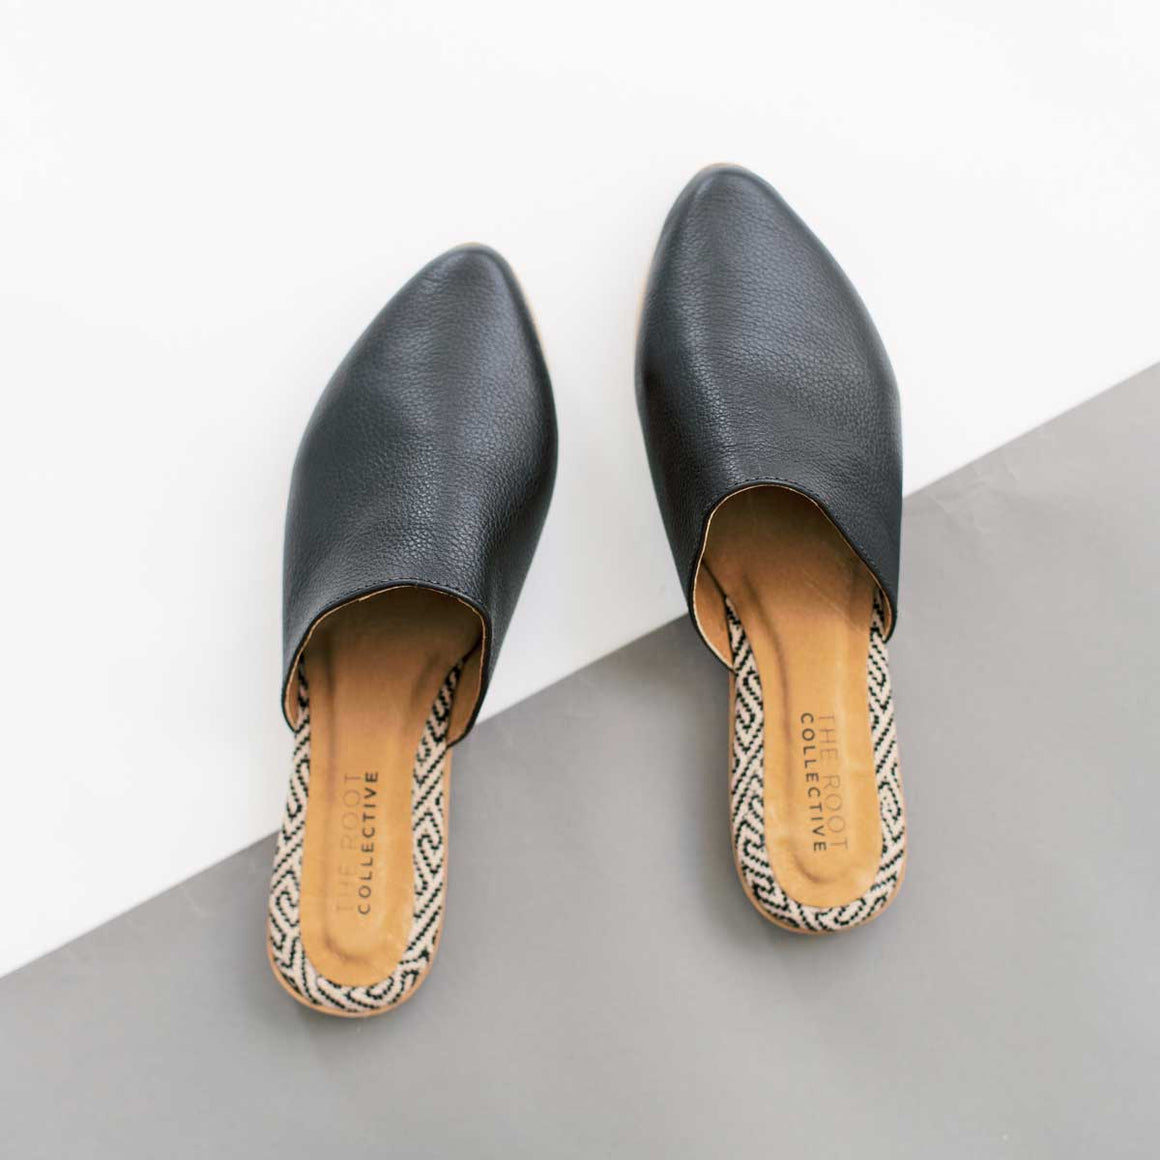 Lili Mule in Pebbled Black Leather